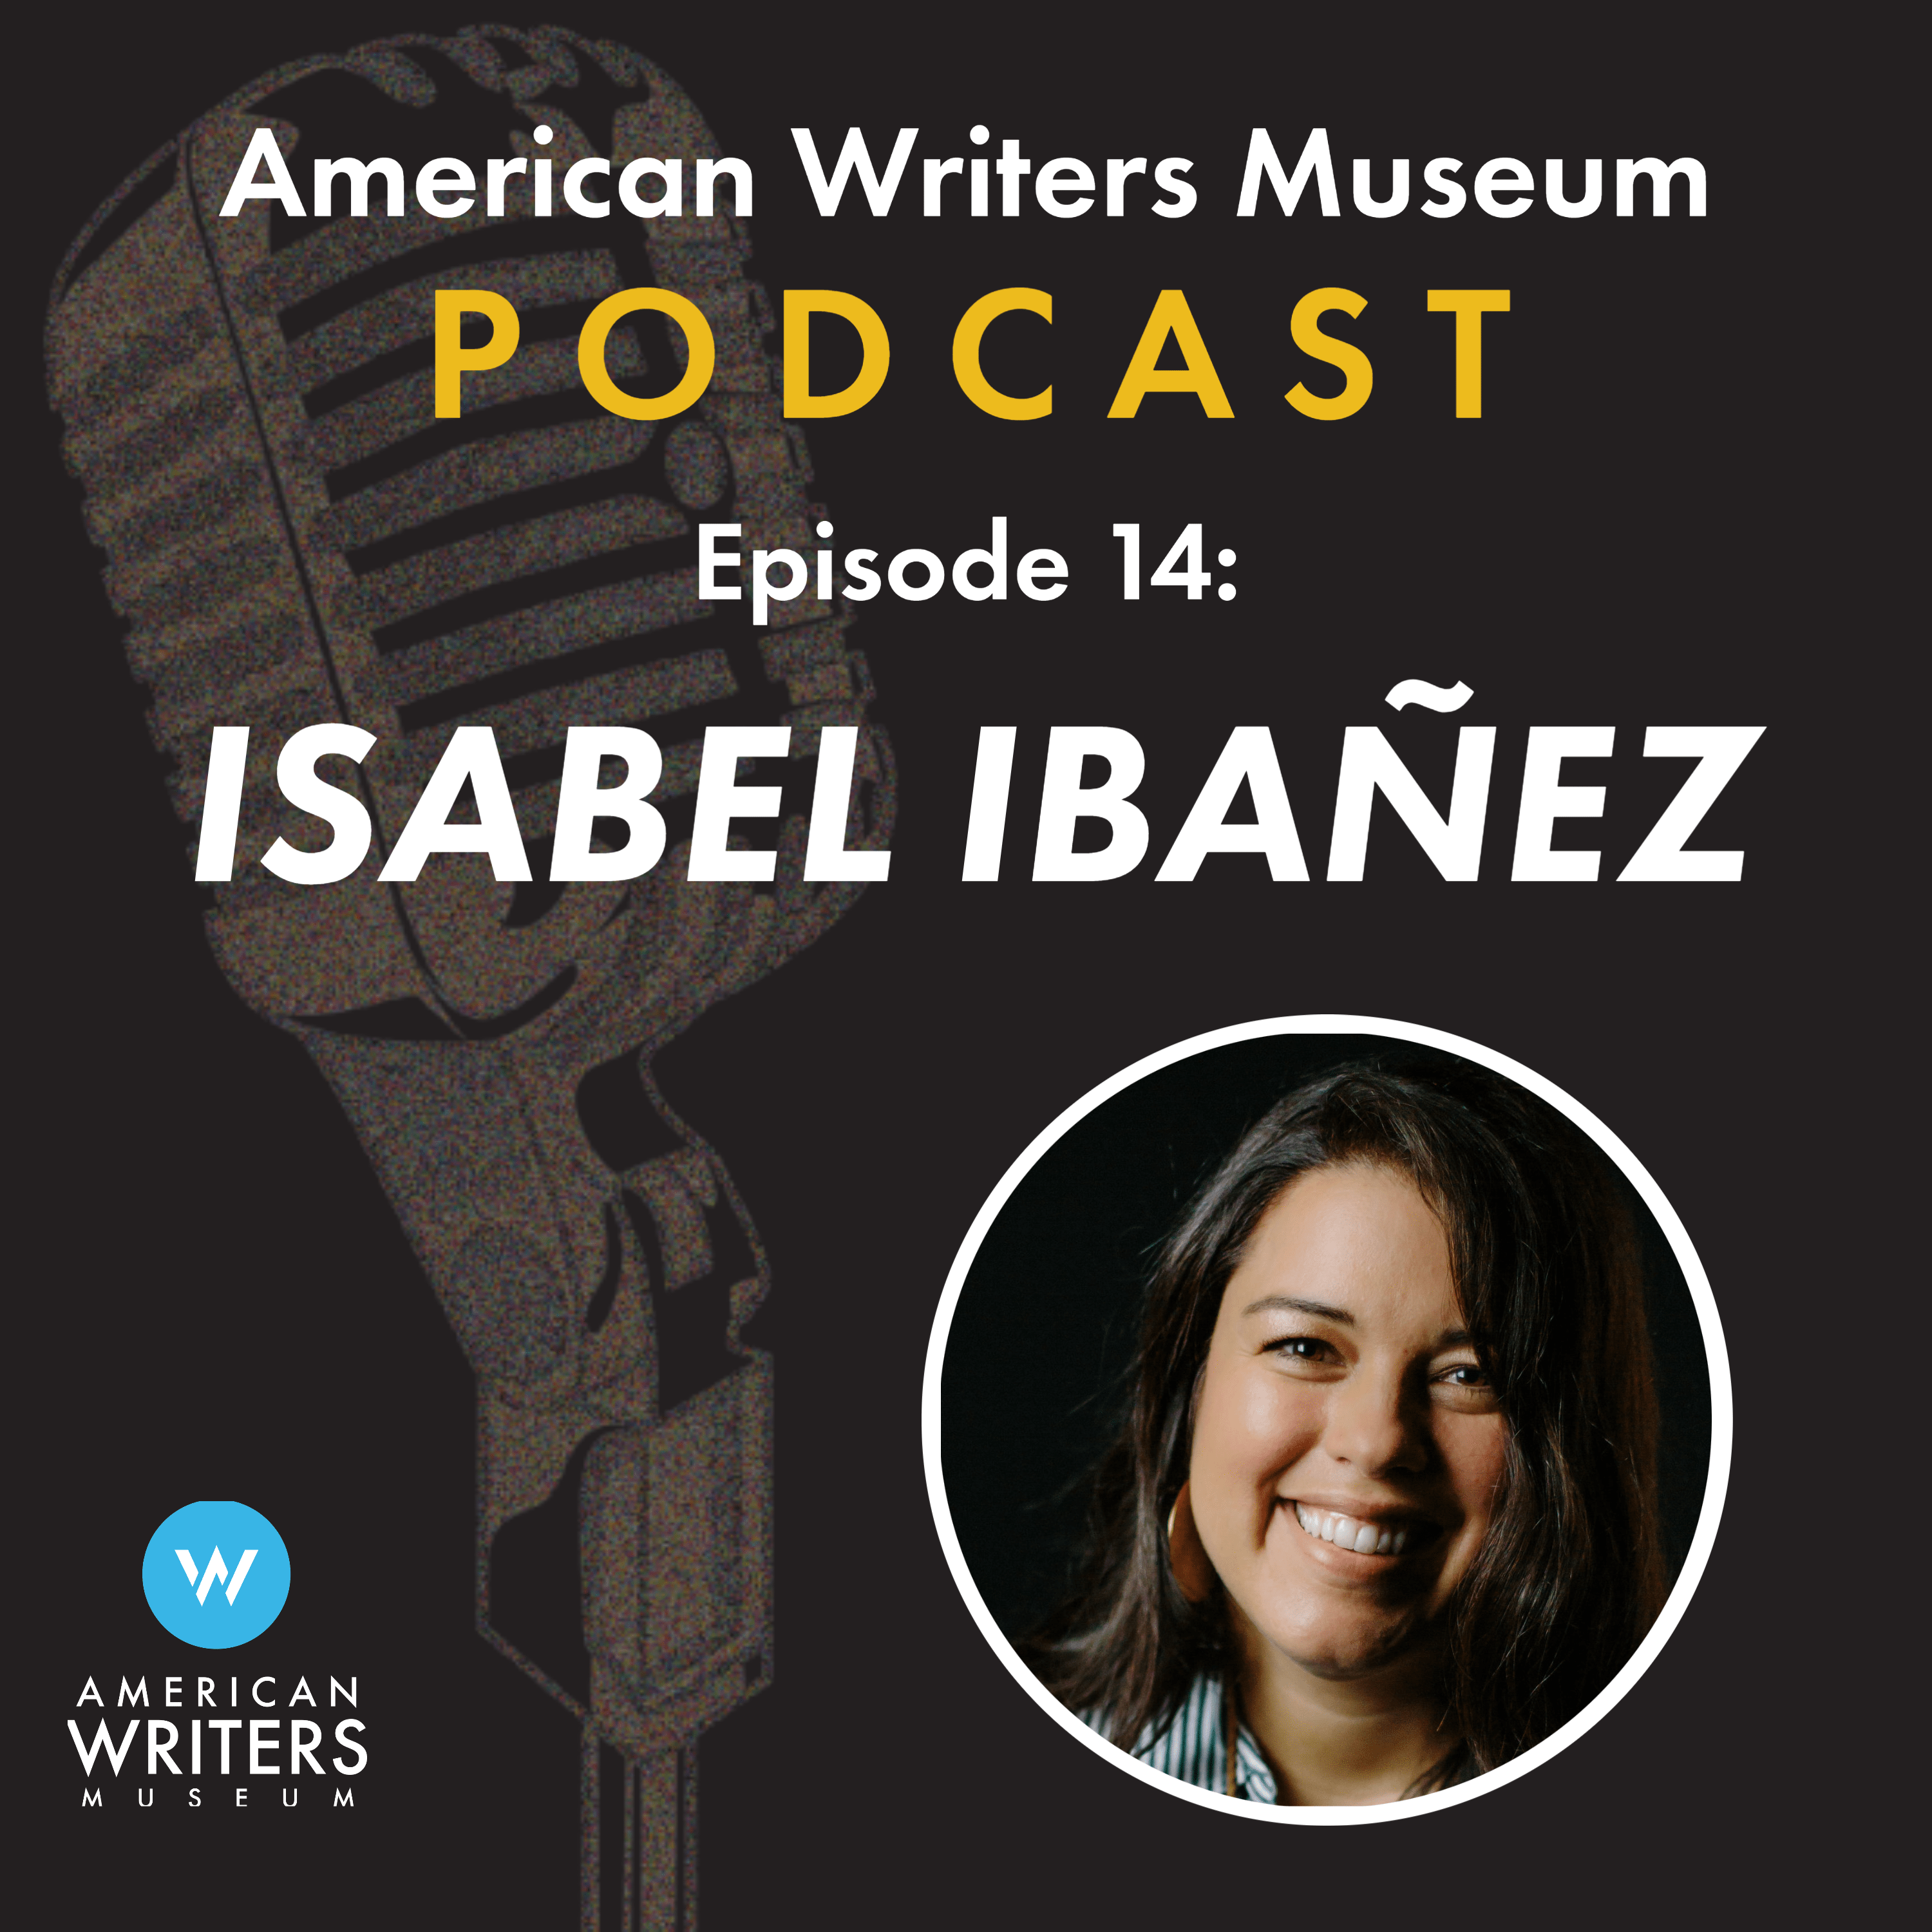 American Writers Museum podcast episode 14 with Isabel Ibanez